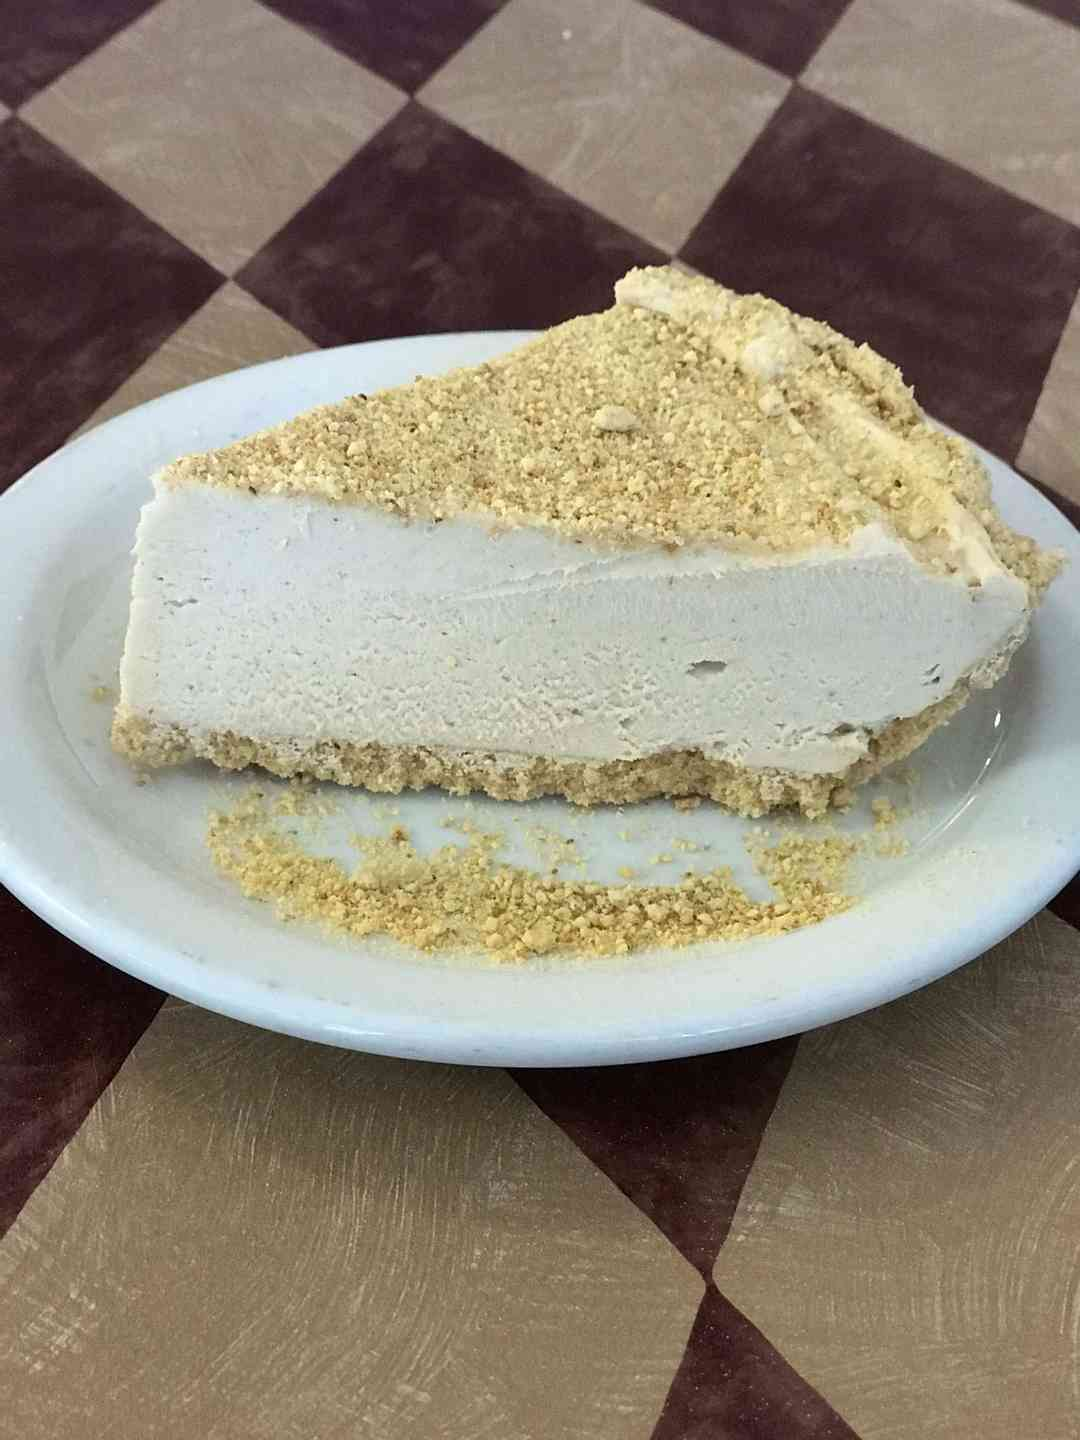 Homemade Peanut Butter Pie